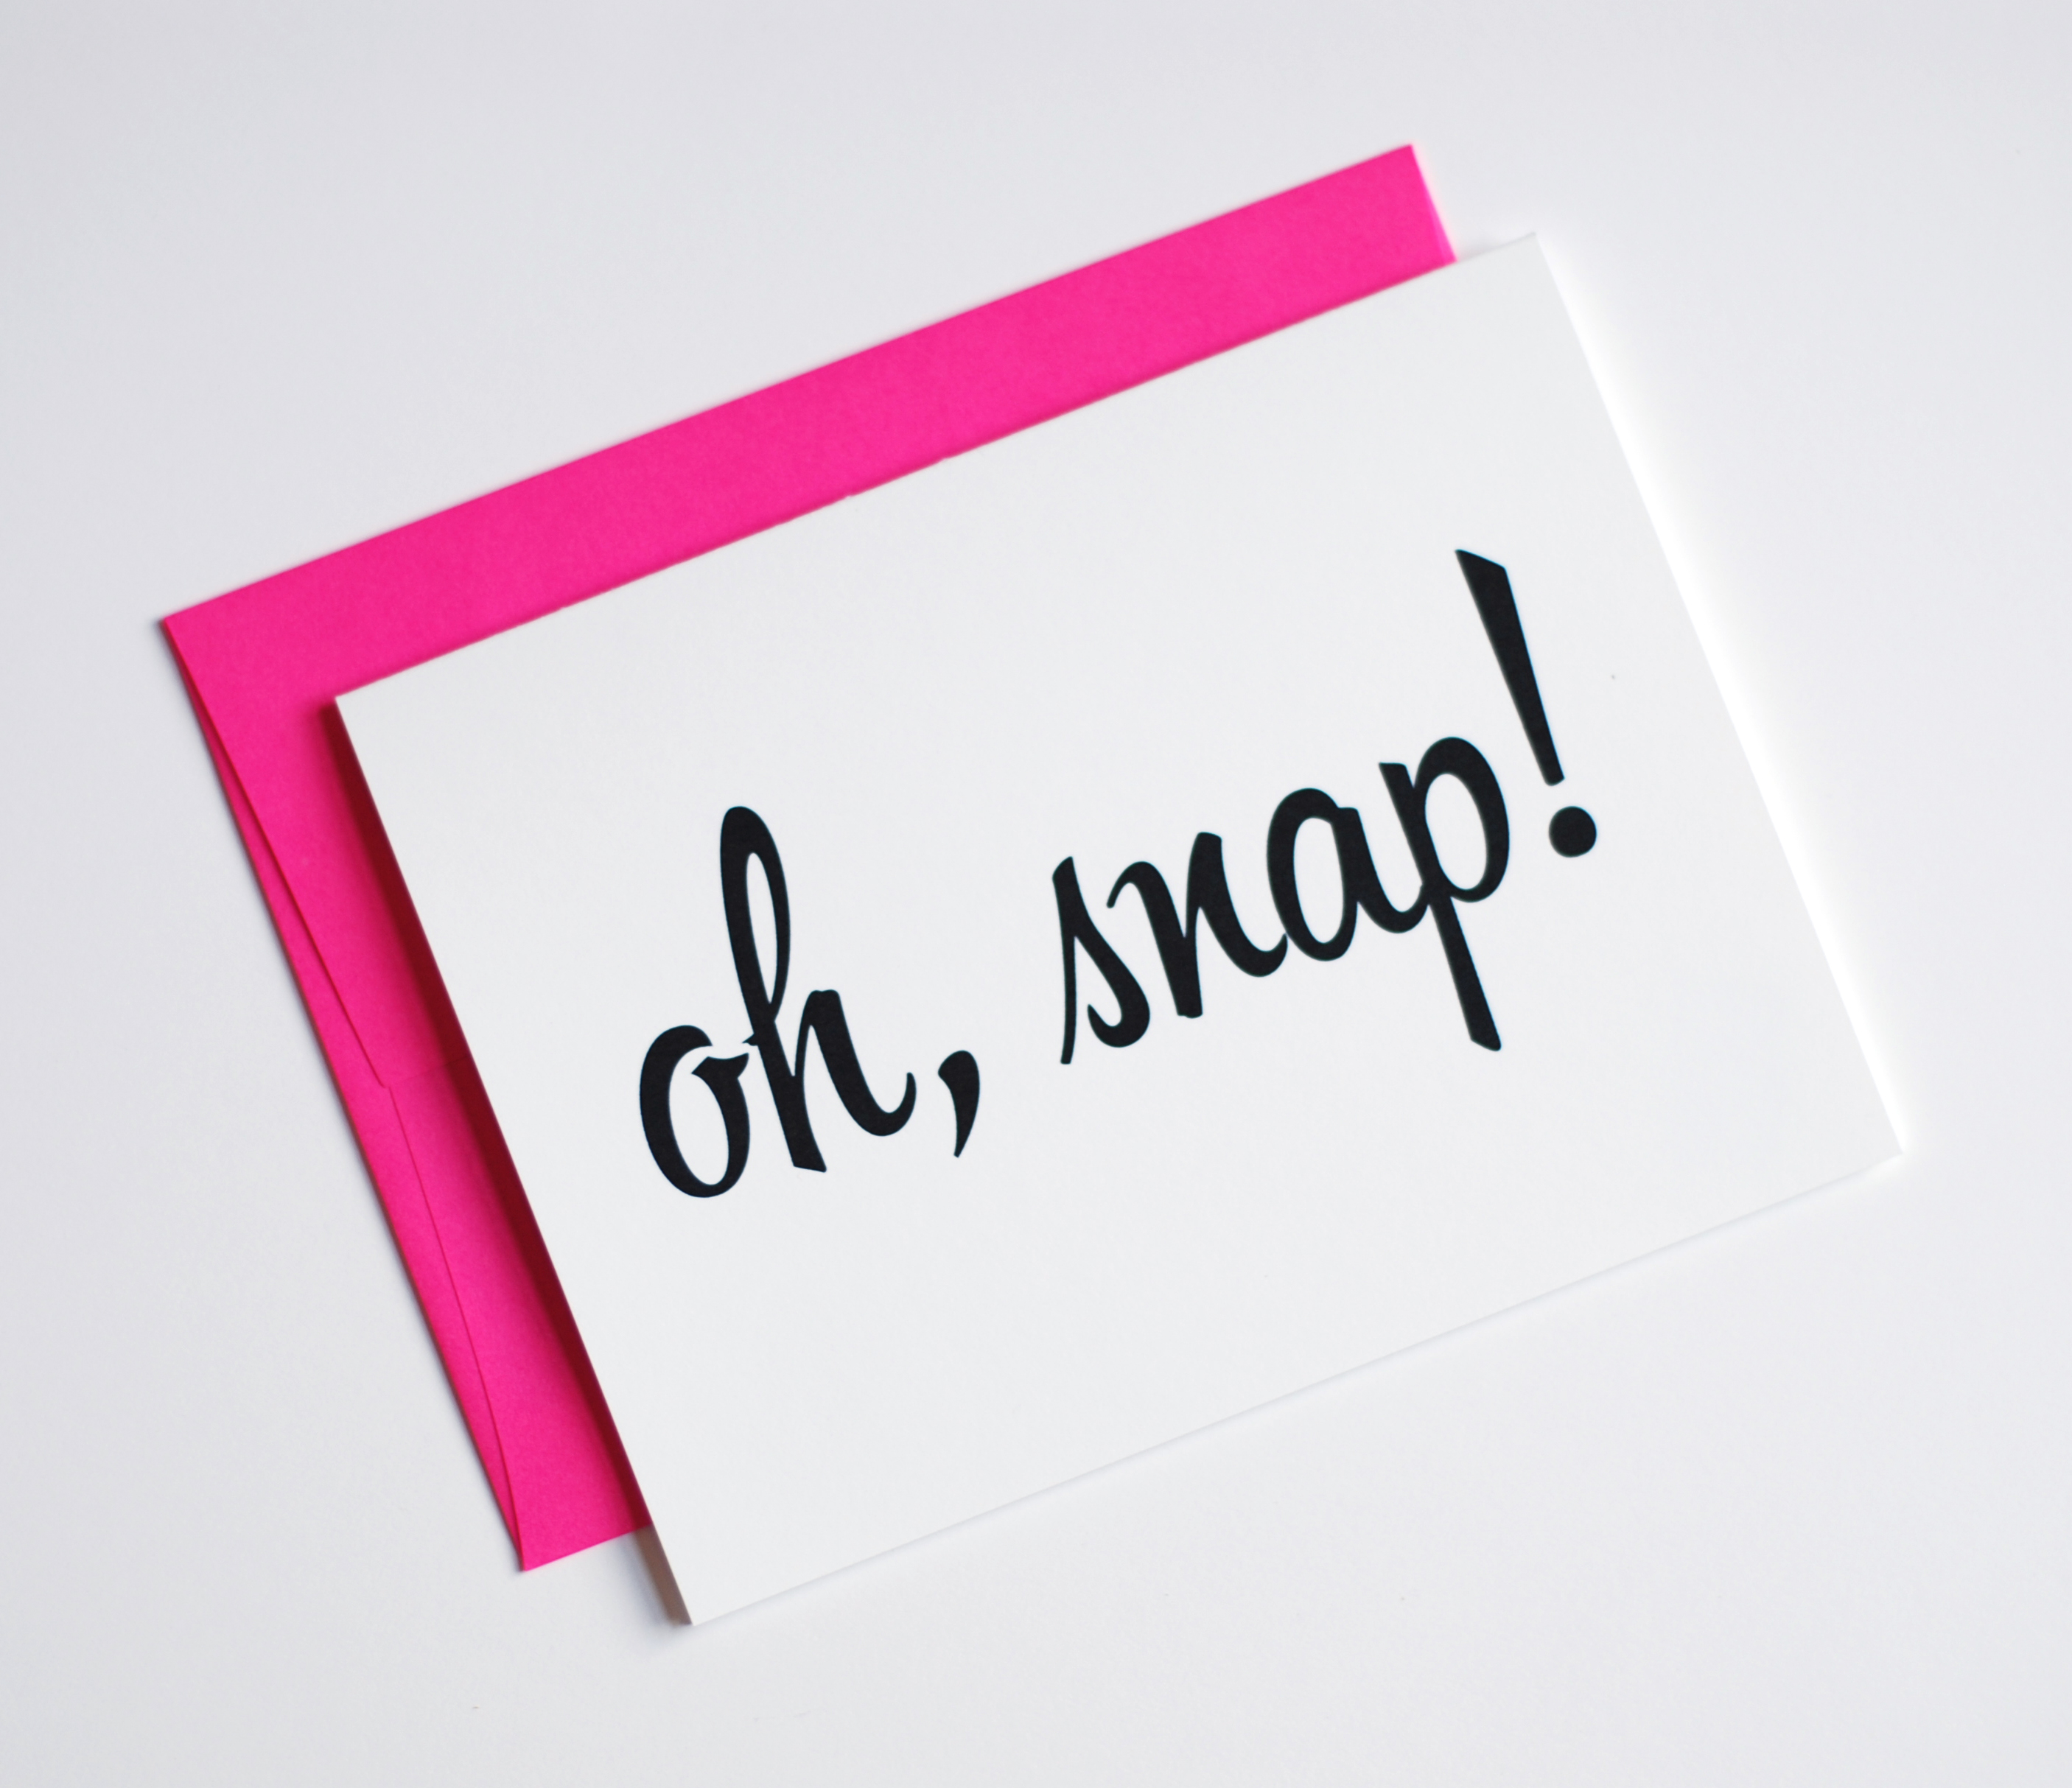 Oh Snap Card - Congrats Card - Neon Pink - Congratulations Card · Row ...: rowhouse14.storenvy.com/collections/190844-just-for-fun/products...